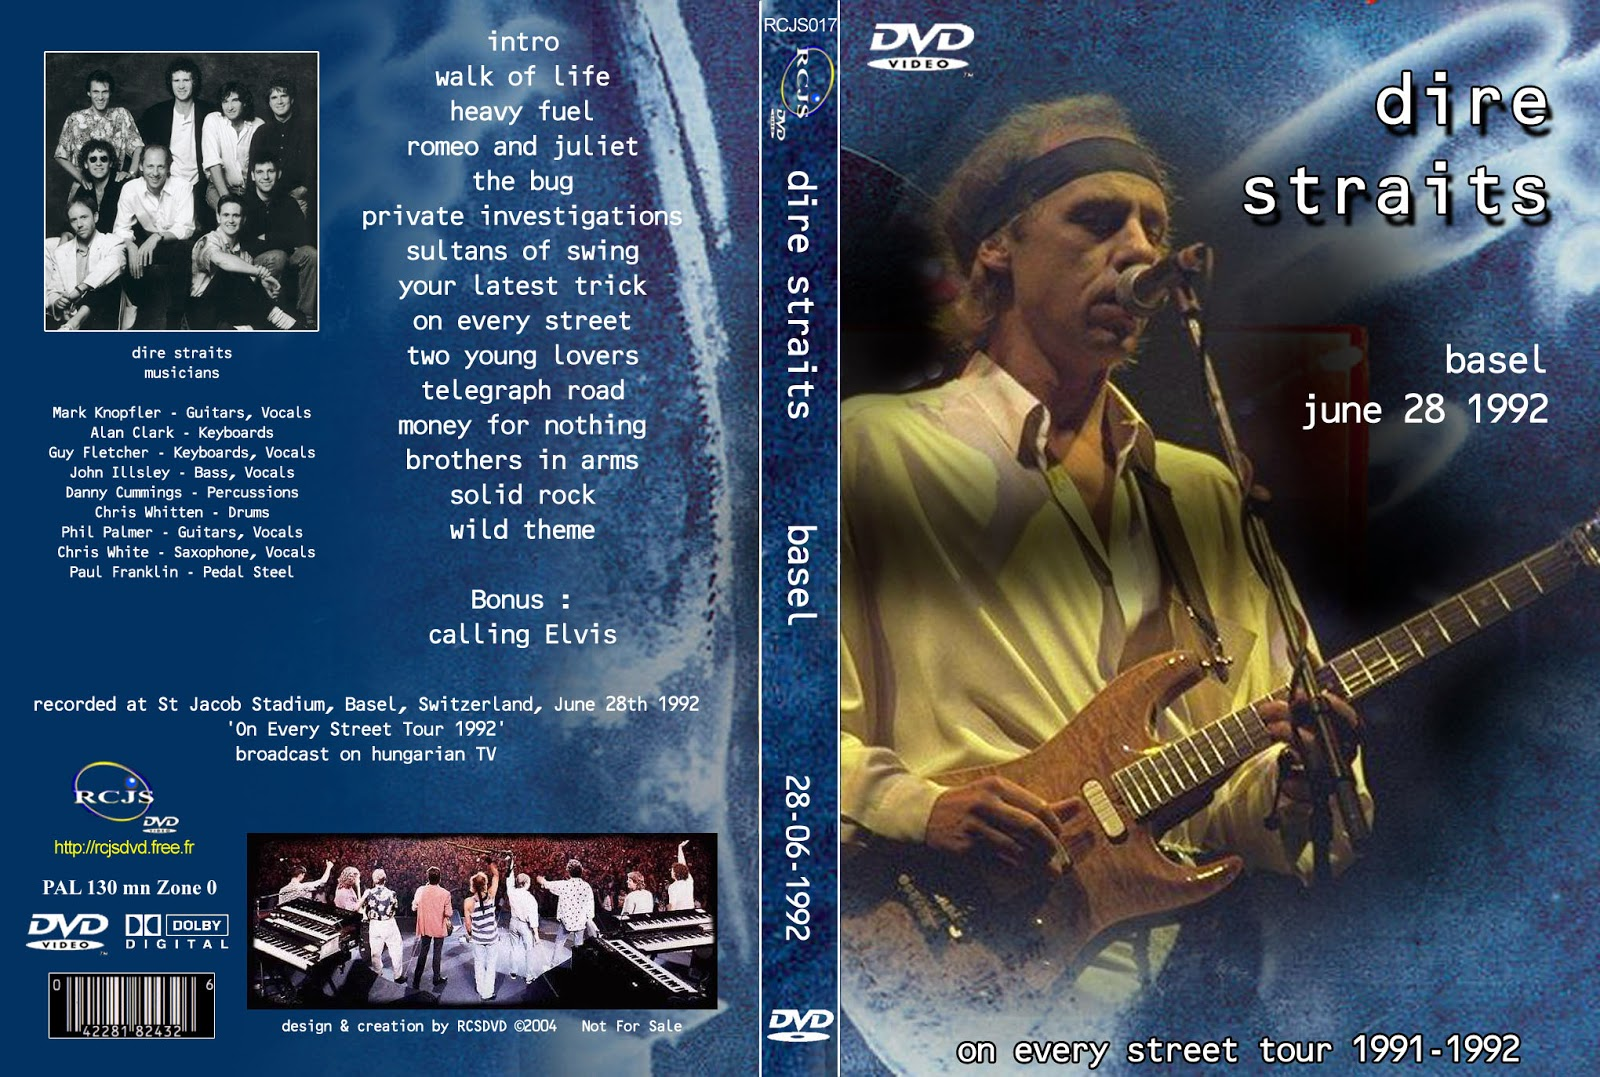 Dire Straits Live The Warner Bros Music Show